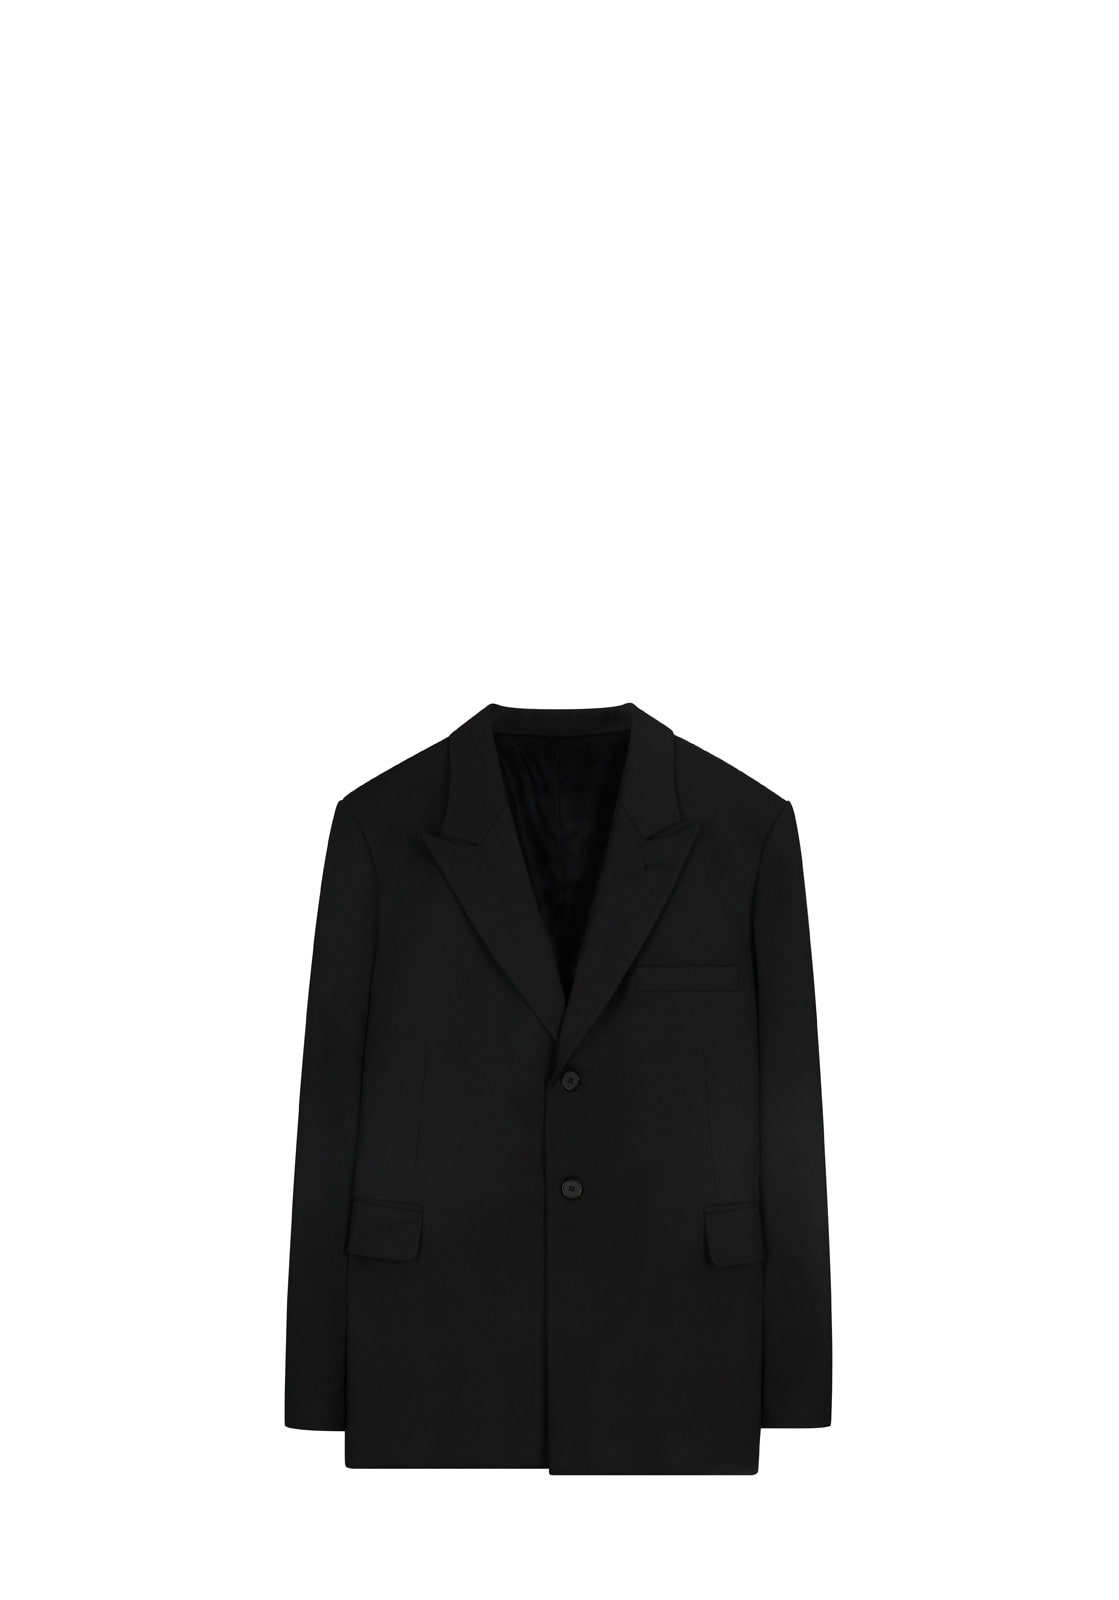 V610 OVERSIZE SINGLE JACKETBLACK